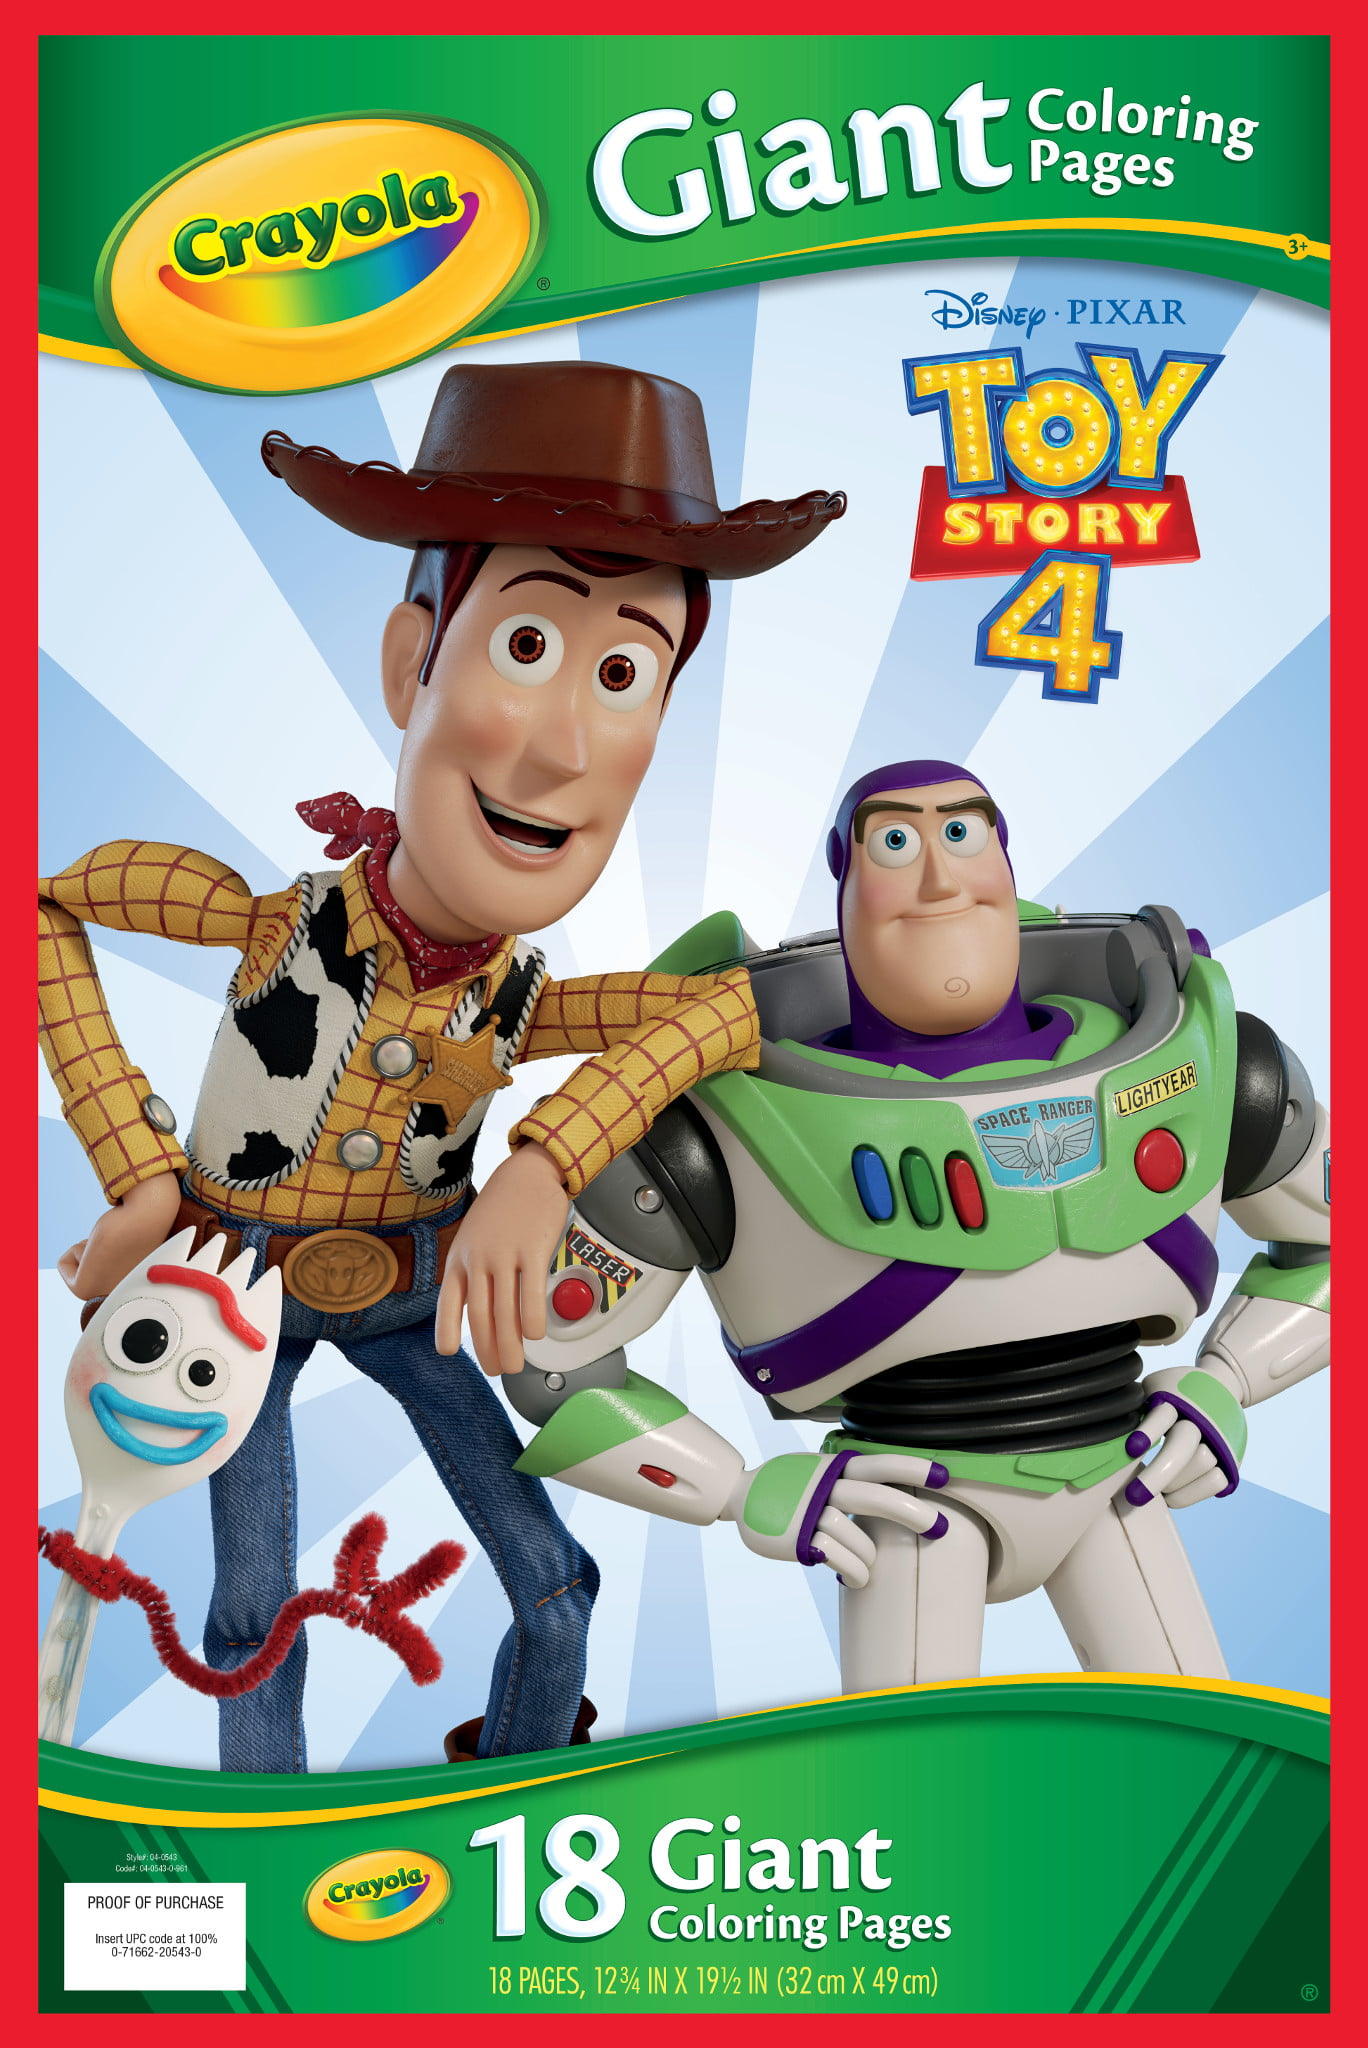 Crayola Giant Coloring Pages Featuring Toy Story 4 - Walmart.com -  Walmart.com